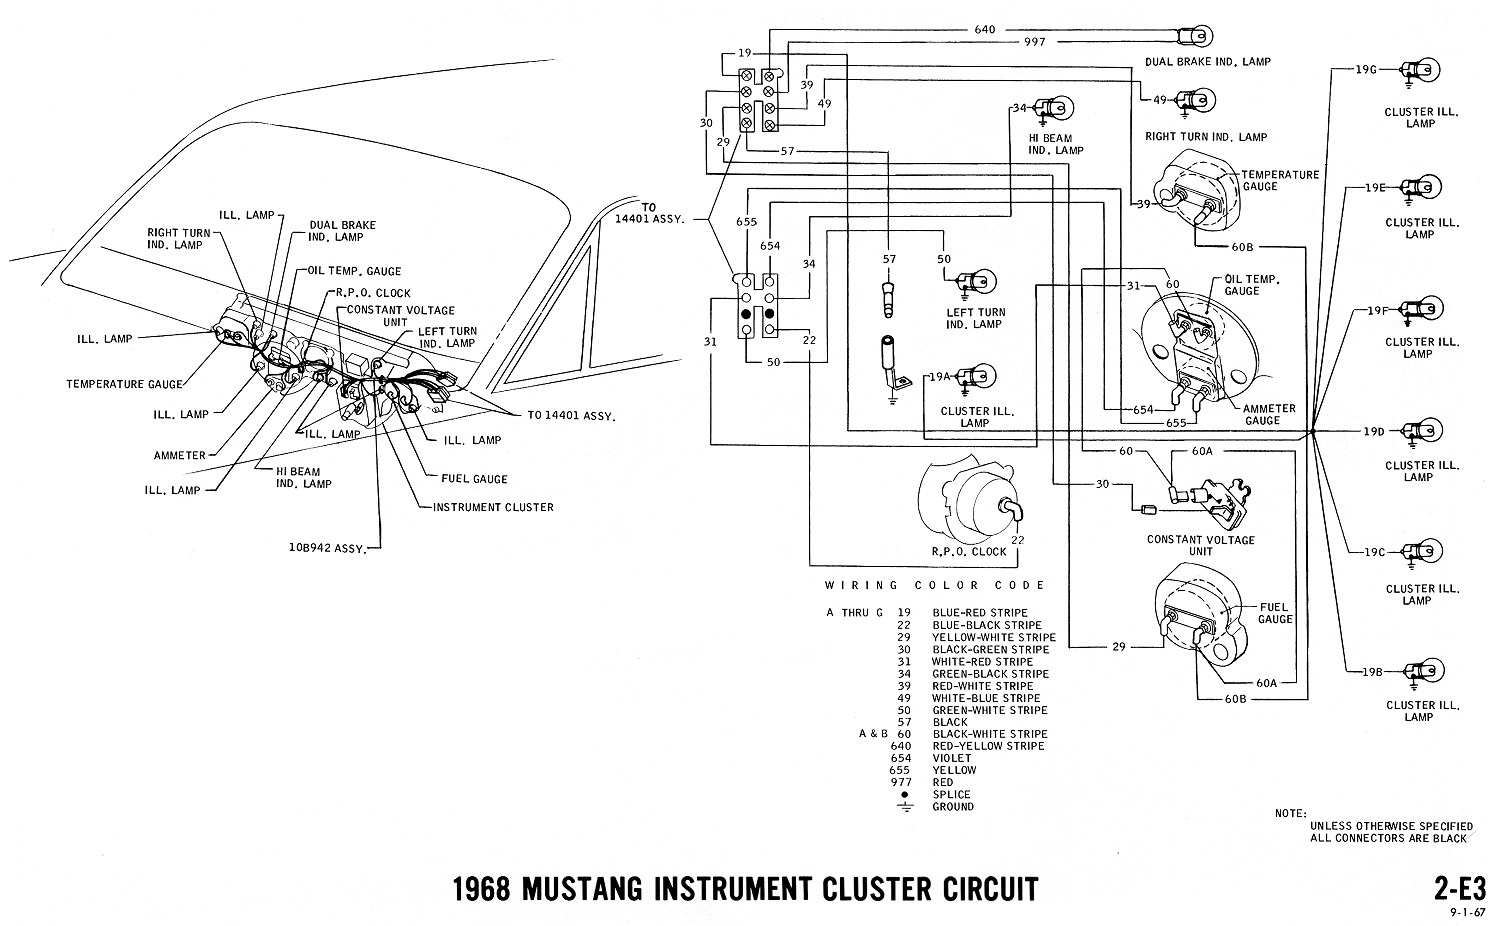 1968 mustang alternator wiring diagram 1968 image 1968 mustang wiring diagrams and vacuum schematics average joe on 1968 mustang alternator wiring diagram